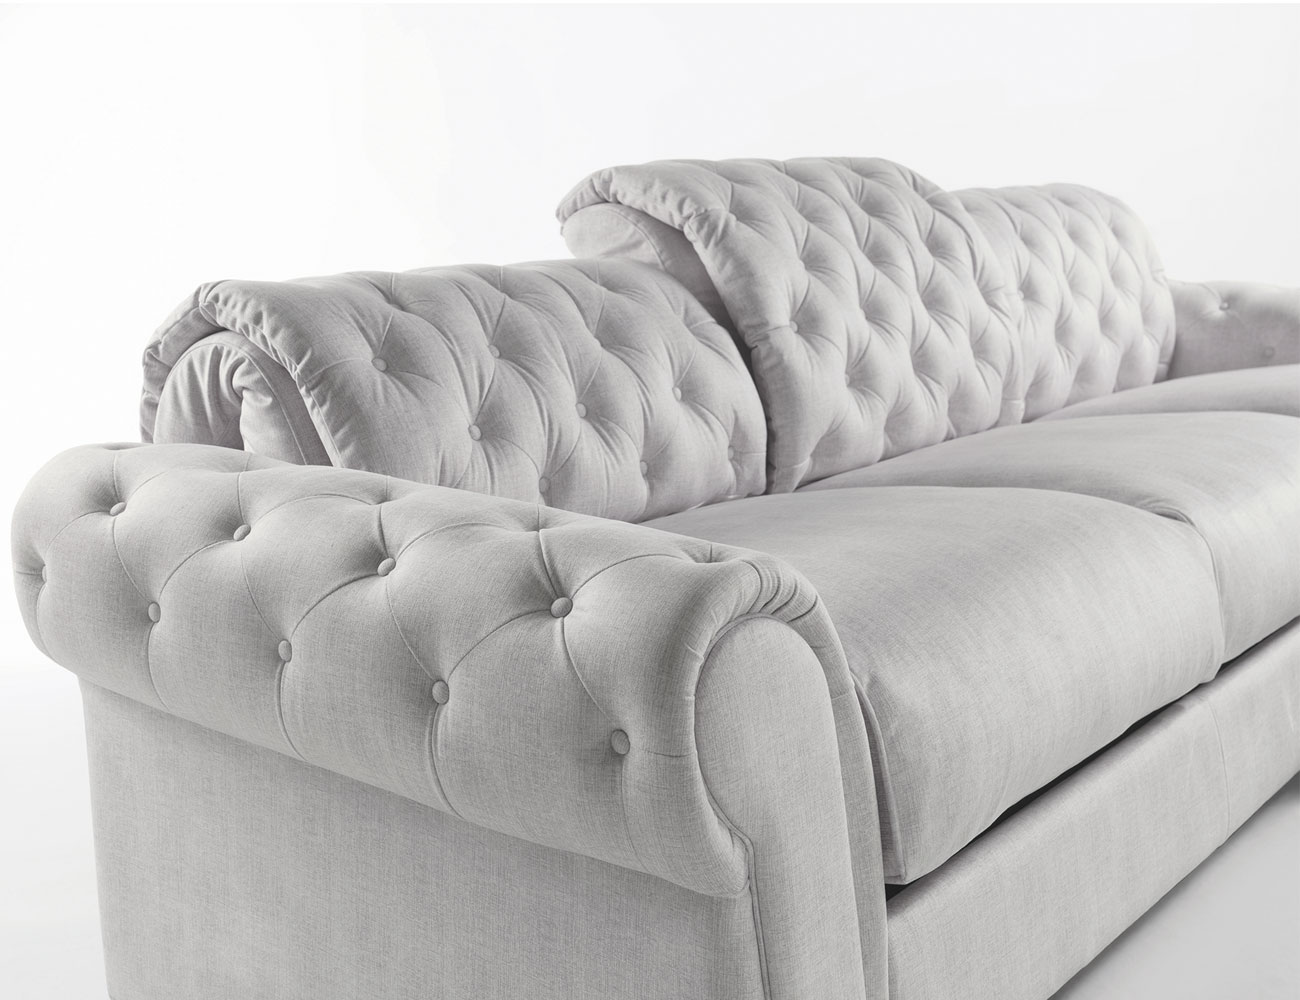 Sofa chaiselongue gran lujo decorativo capitone blanco tela 156